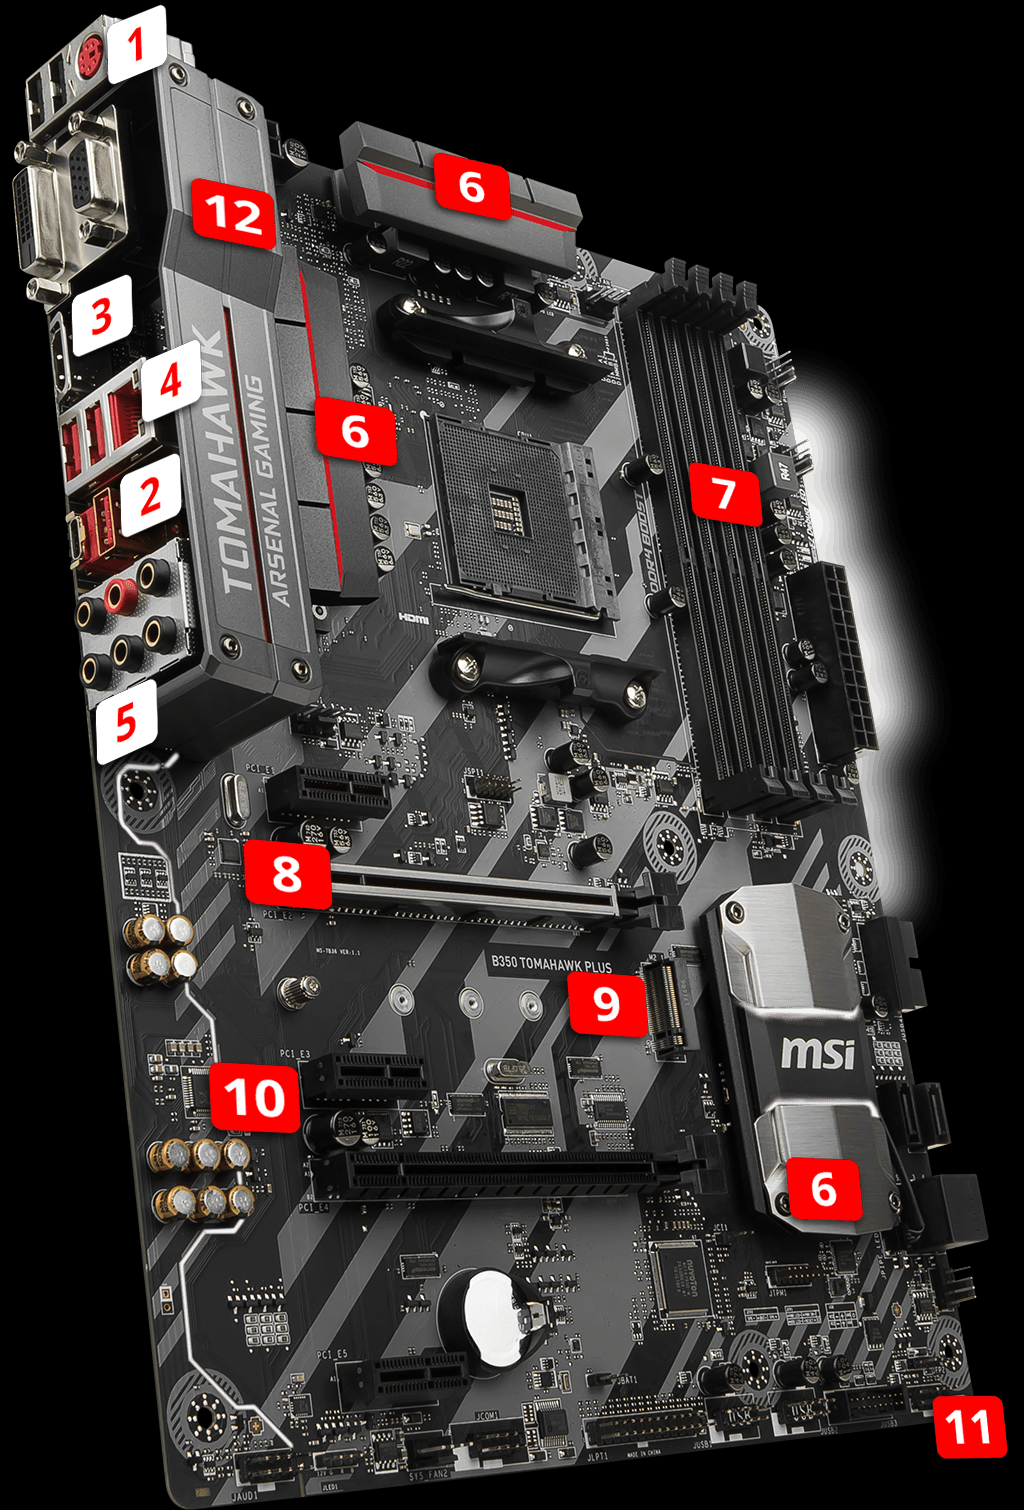 msi b350_tomahawk_plus overview overview for b350 tomahawk plus motherboard the world leader  at eliteediting.co